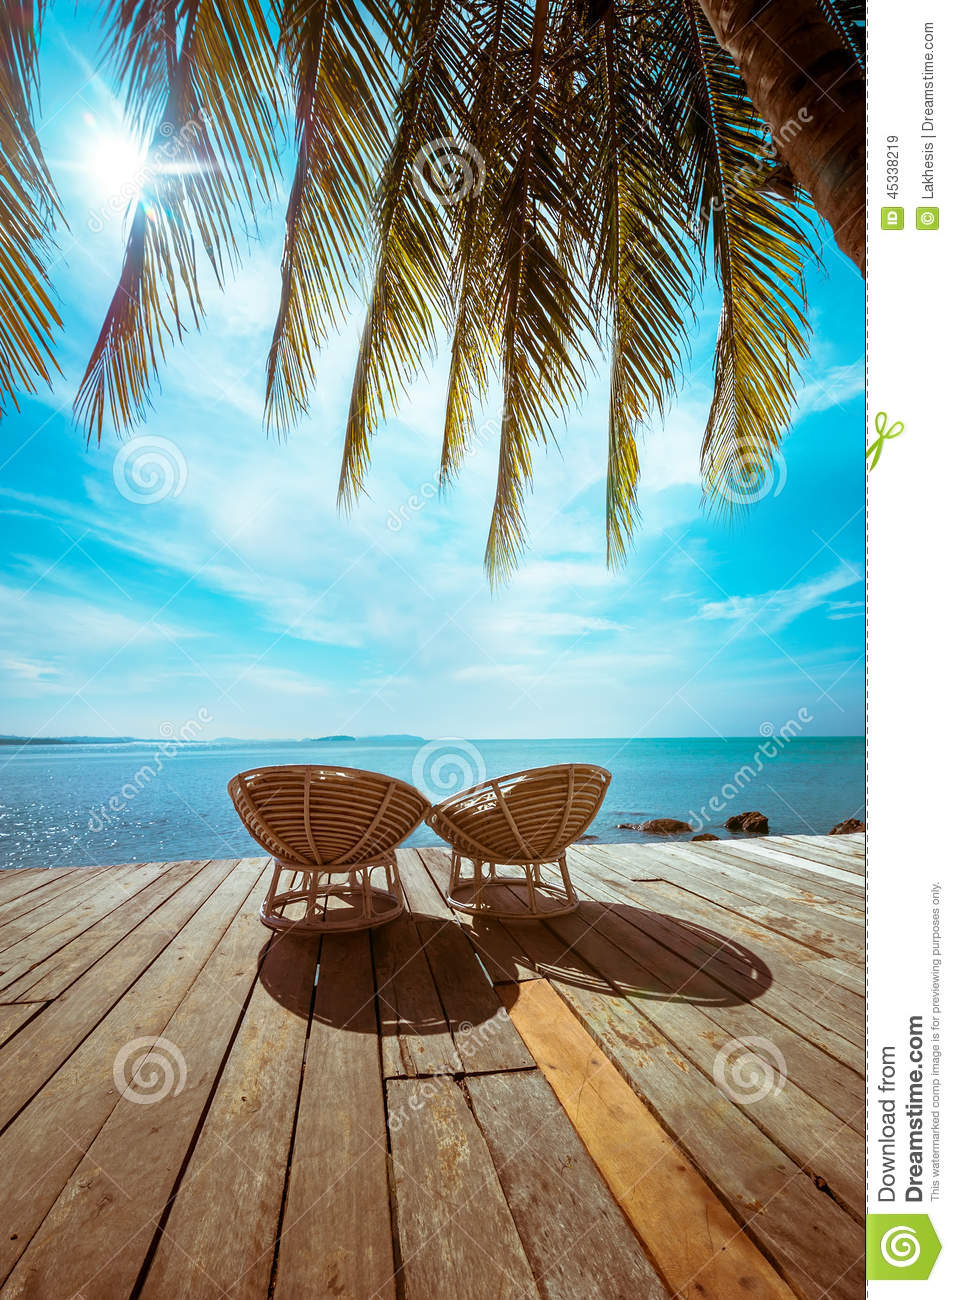 wooden beach chairs plans chair standards tropical with palm tree and stock image - of concept, nature: 45338219